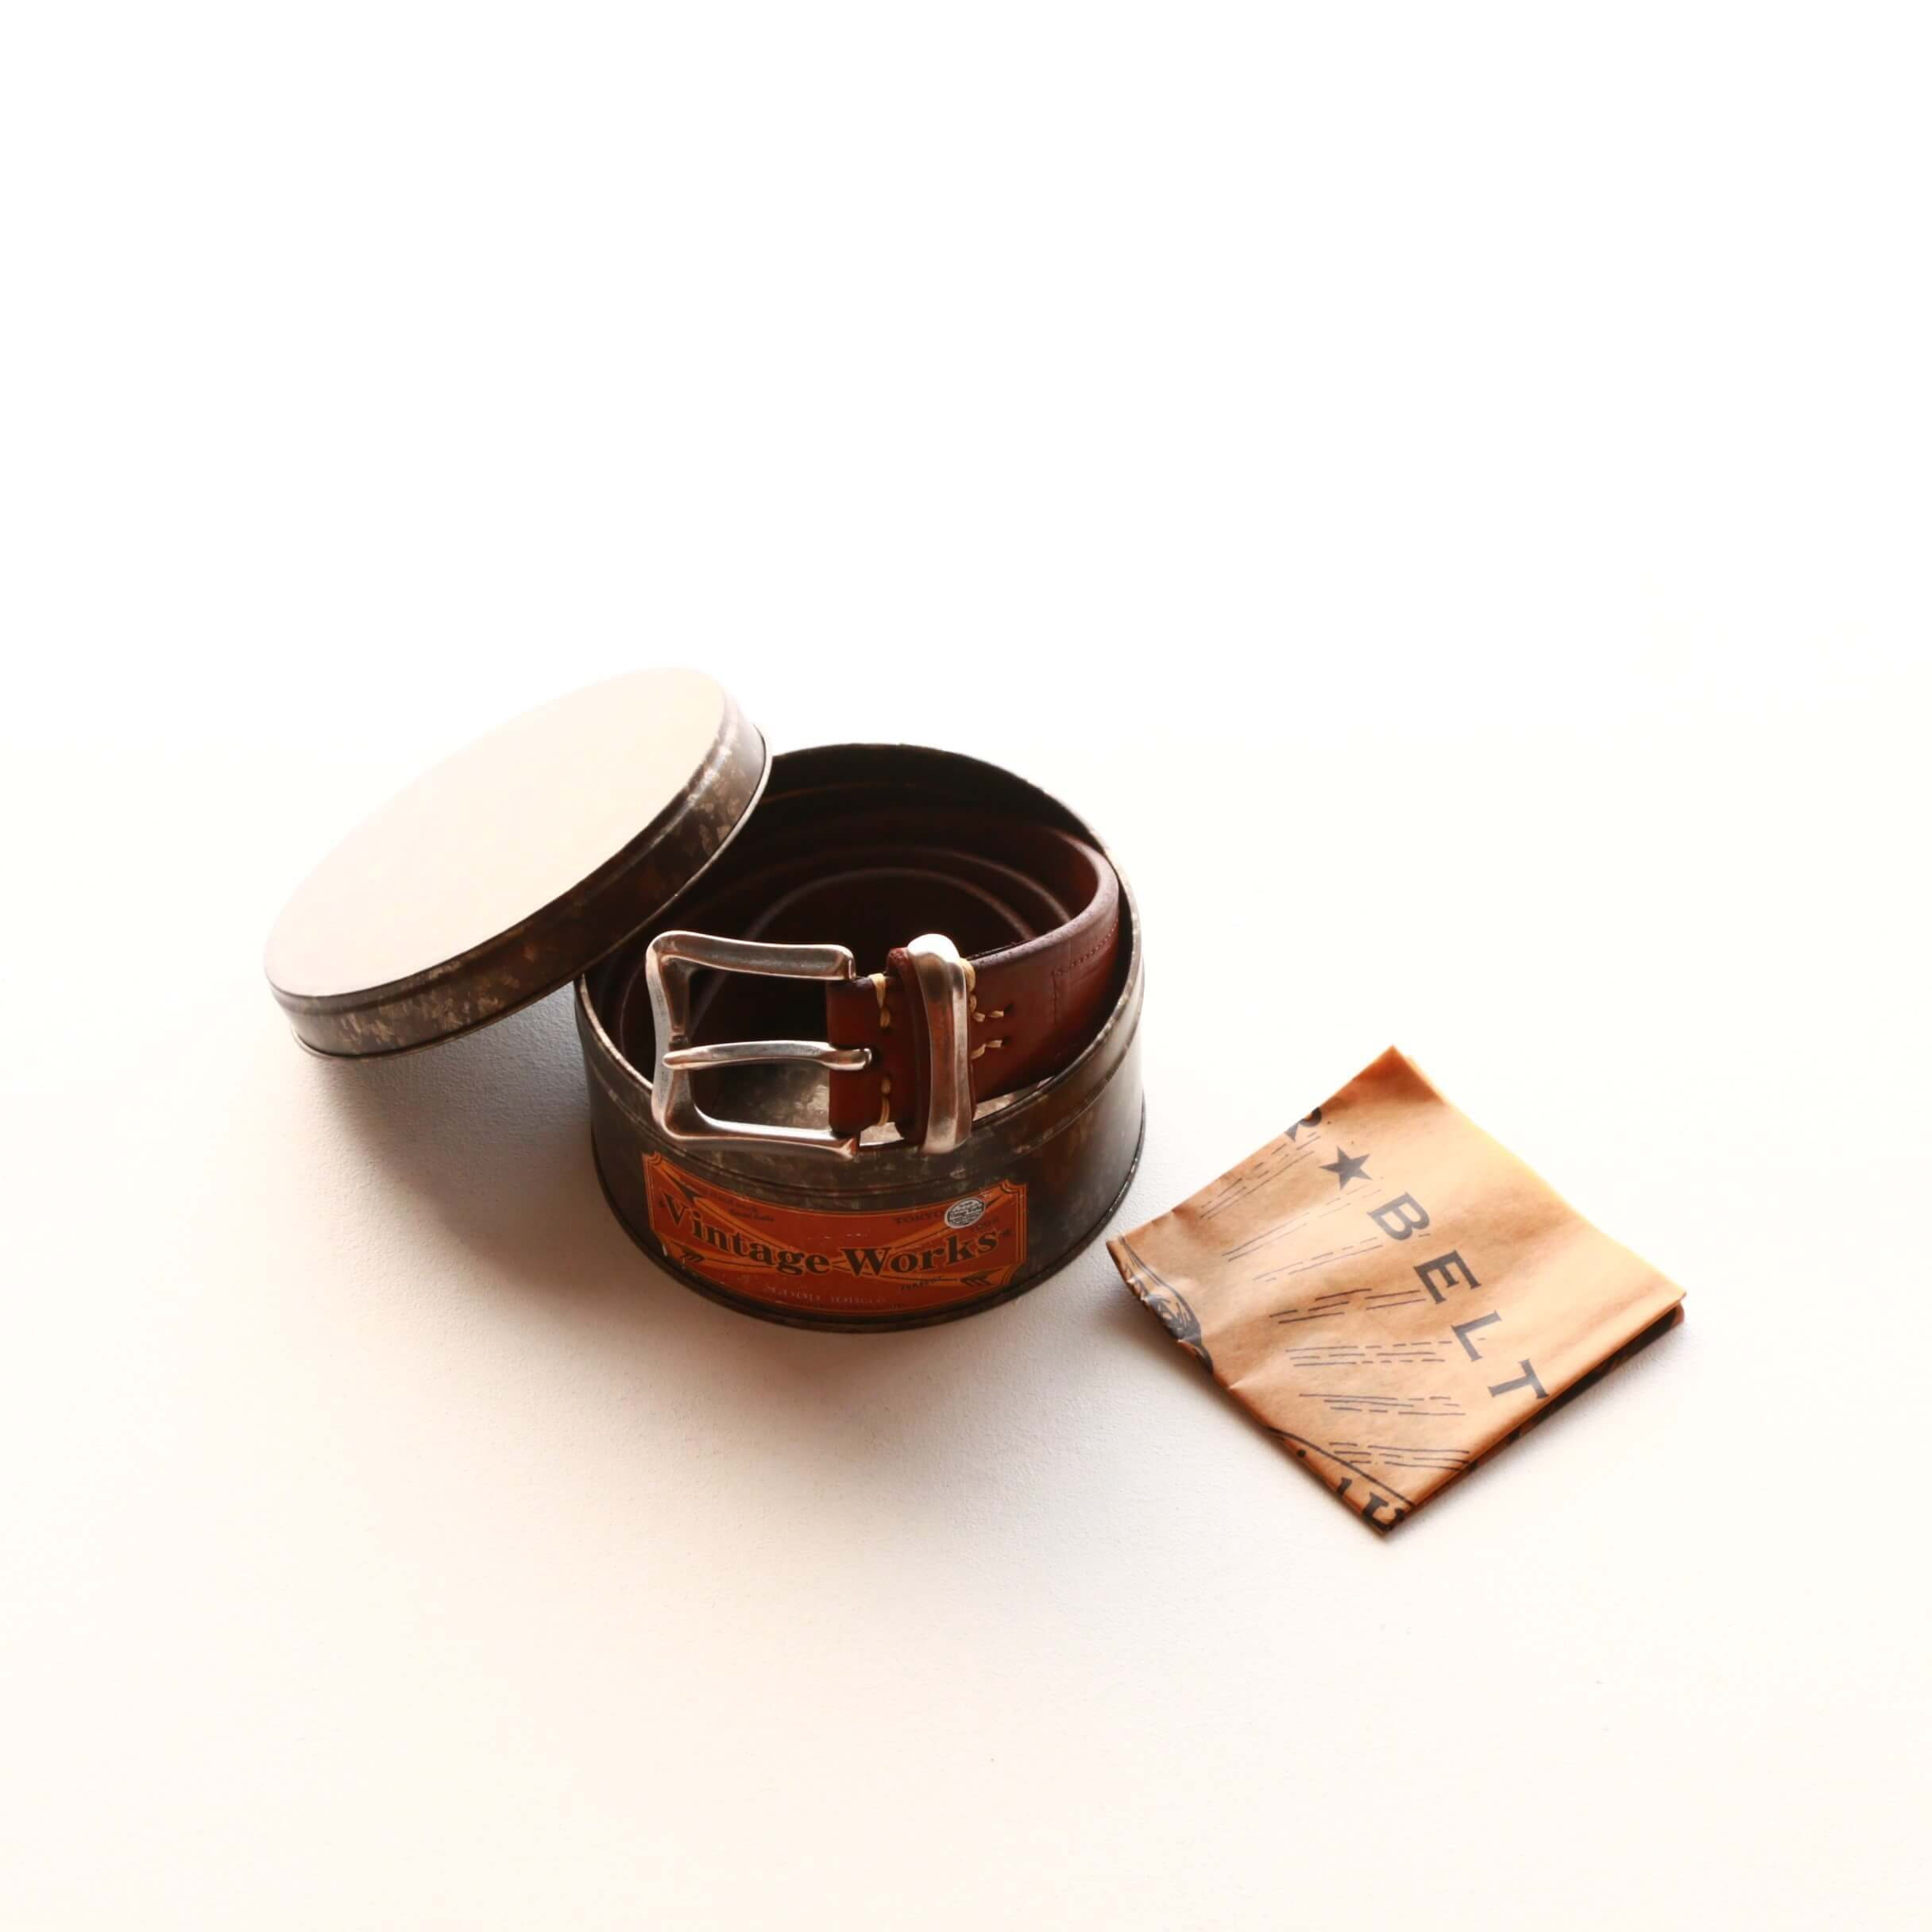 Vintage Works ヴィンテージワークス Leather belt 5Hole レザーベルト 5ホール DH5675